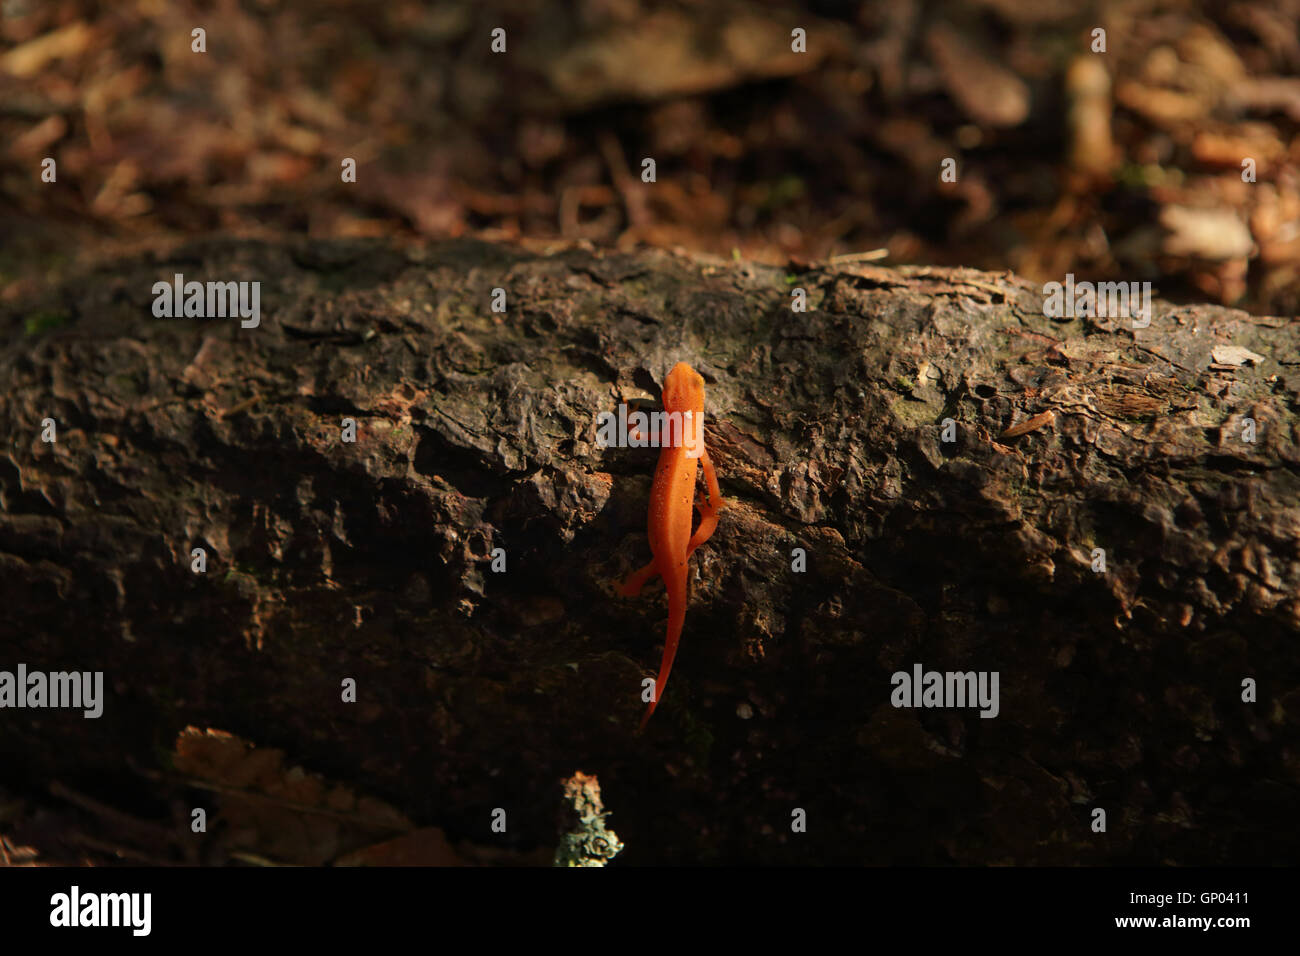 Red eft climbs a fallen log on the forest floor in the Green Mountains of Southern Vermont, USA Stock Photo